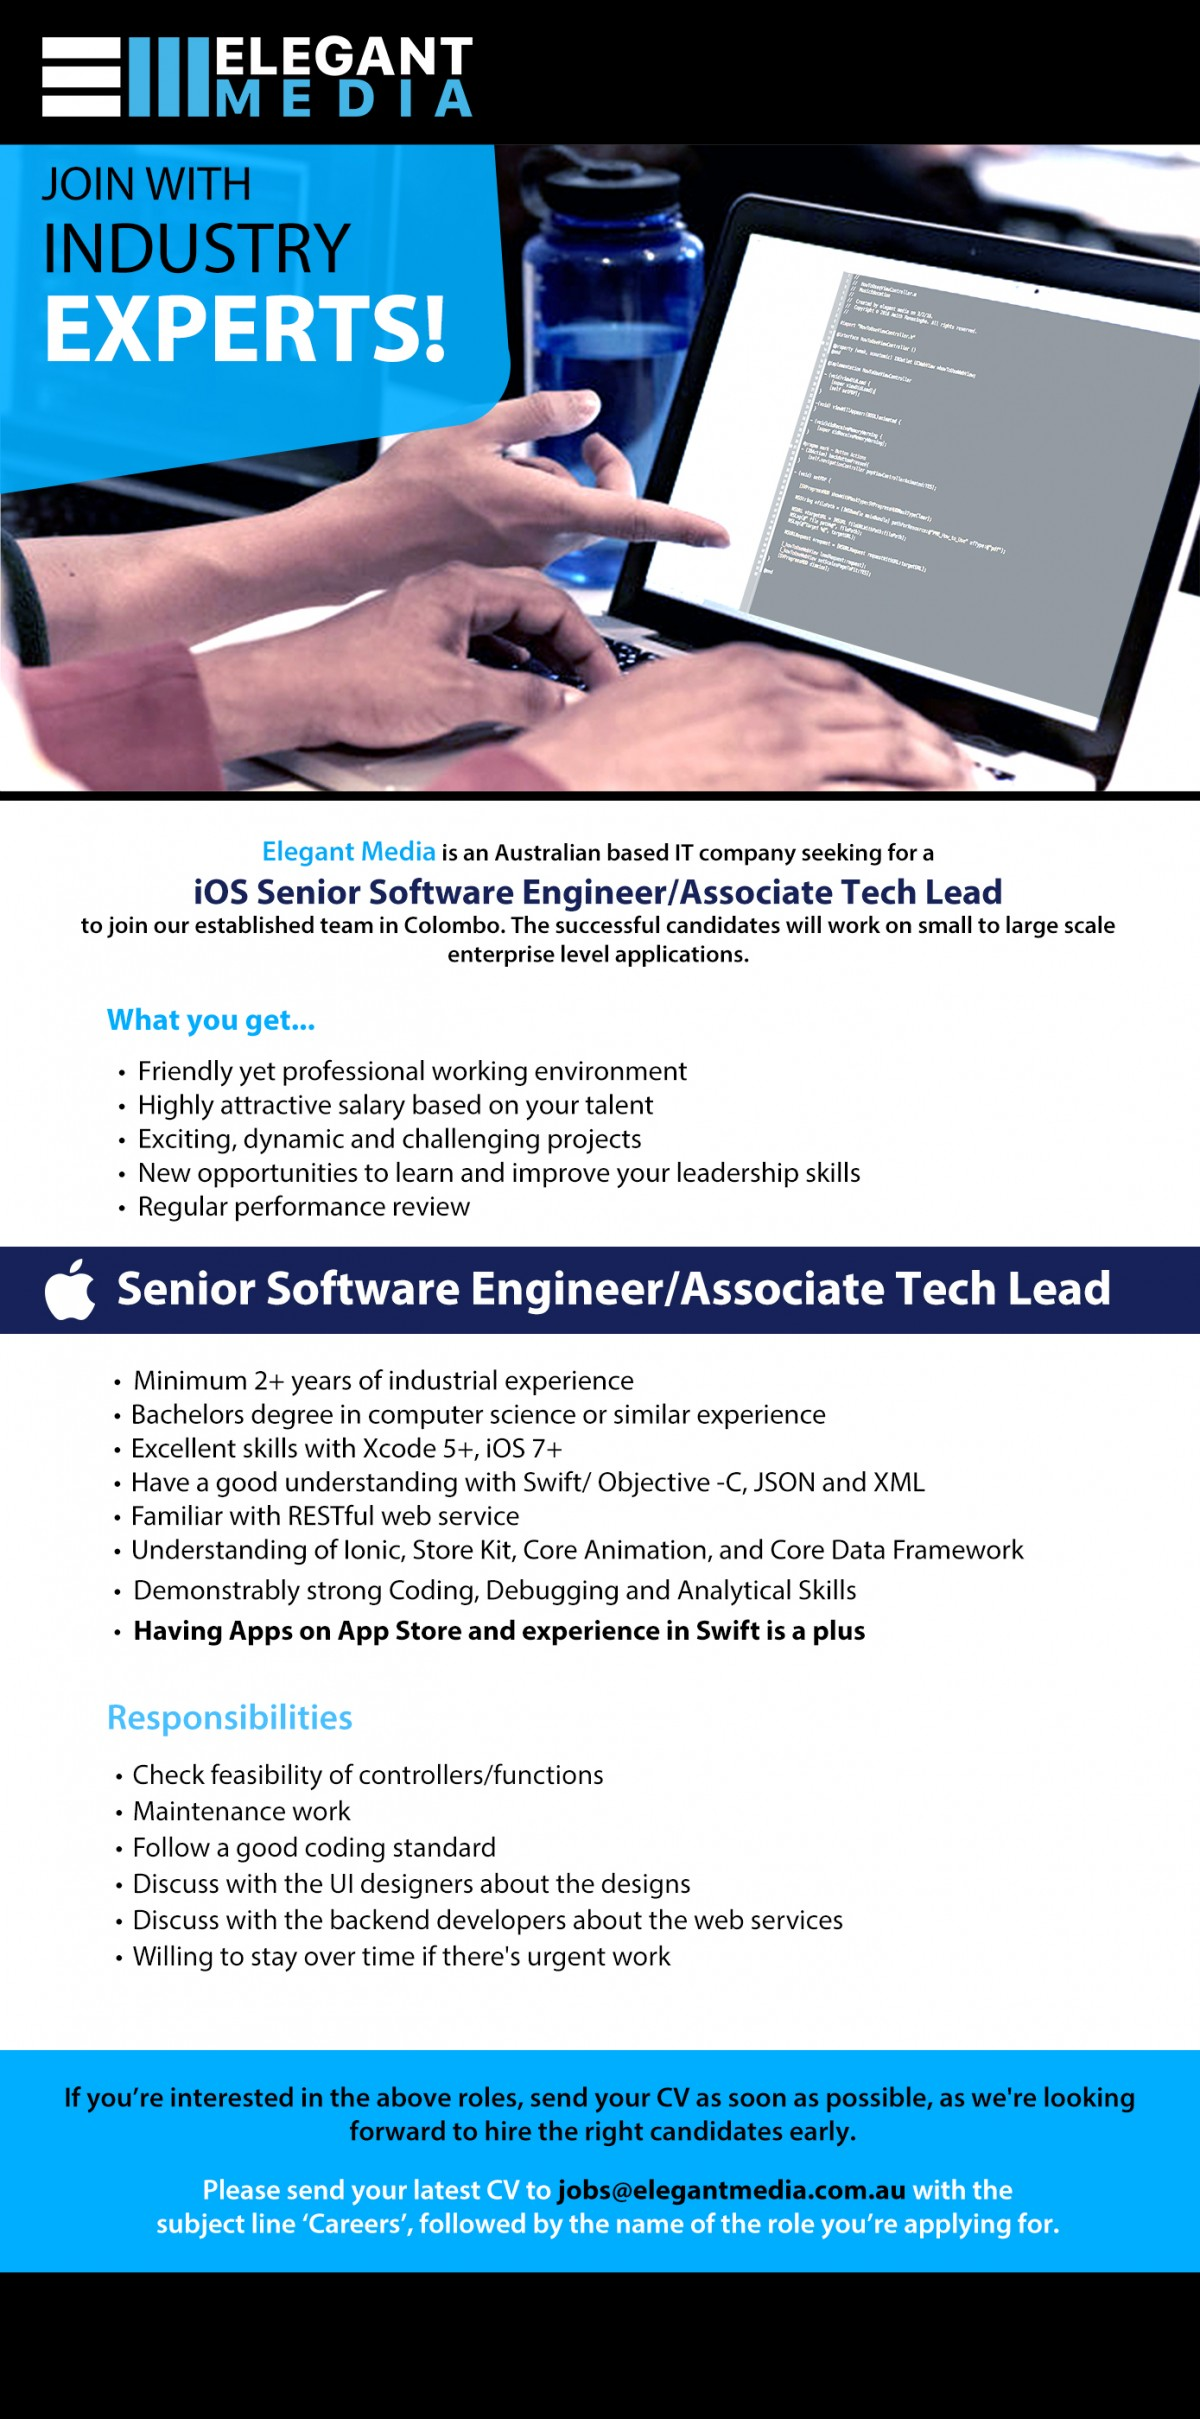 my dream job software engineer It / software 88 jobs engineering 84 jobs marketing 83 jobs administrative 61 jobs logistics 30 jobs education / training job seekers, ready to find your dream job jun 21 14:20 everjobs upload or create your cv and gain access to thousands of job opportunities.